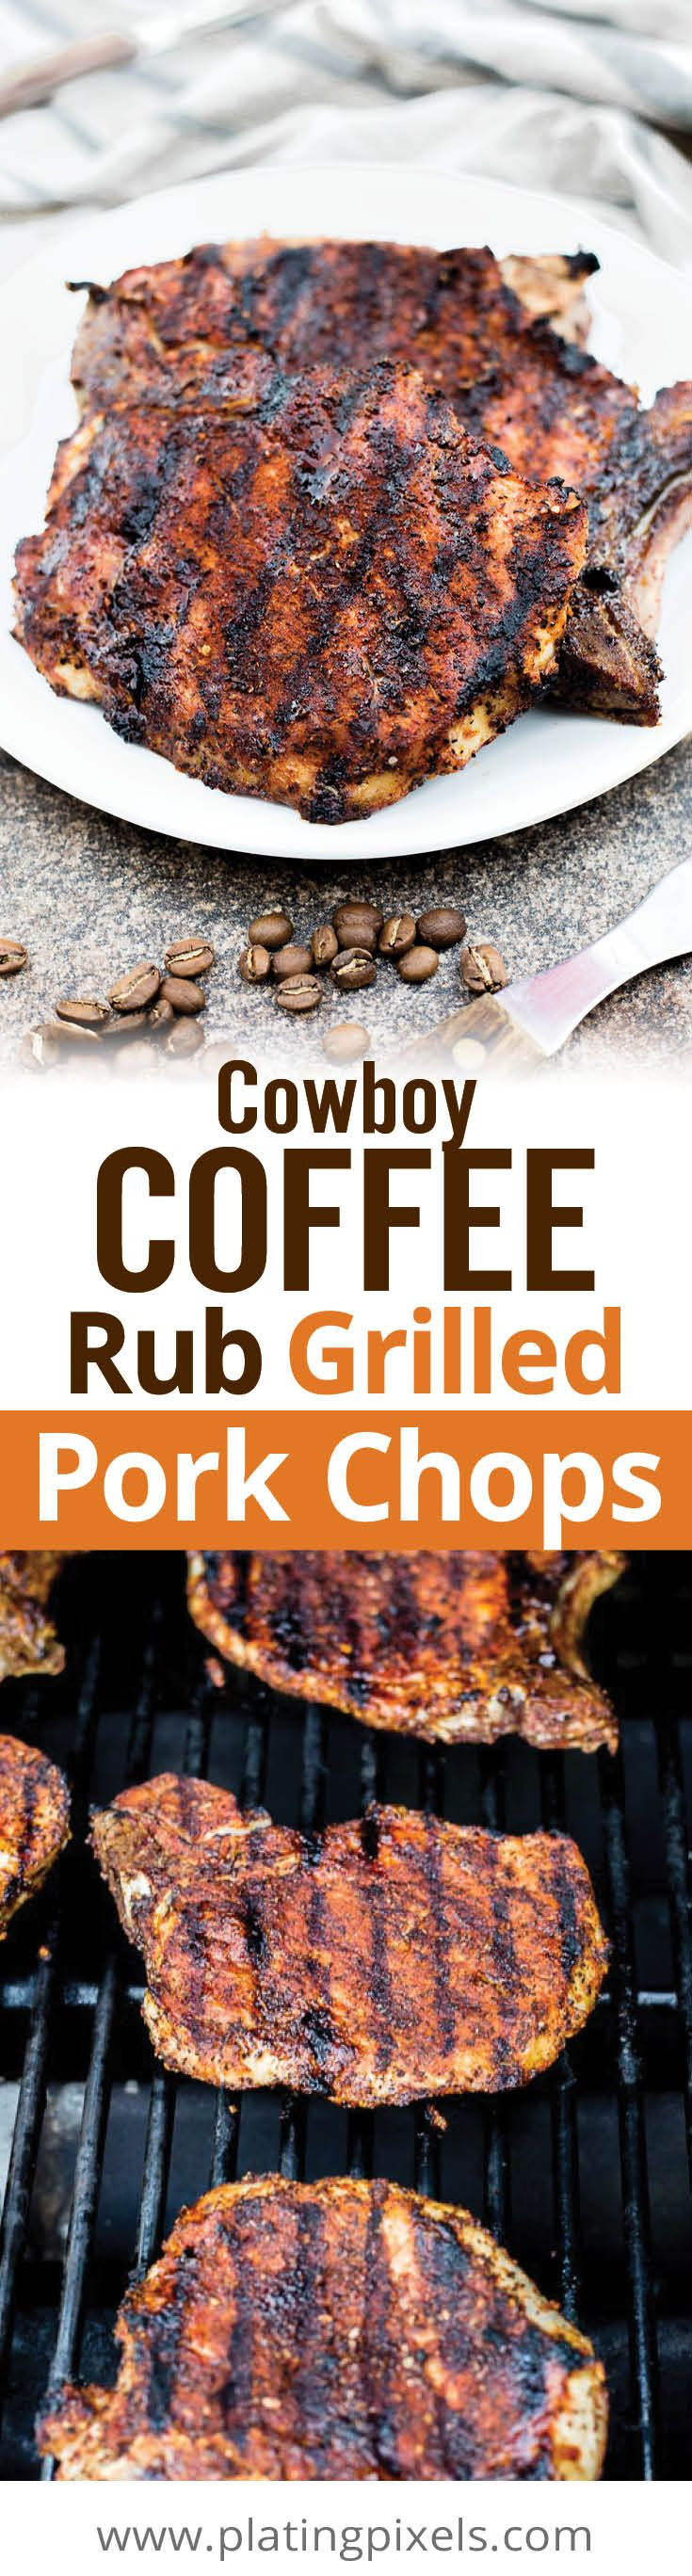 Easy spiced Cowboy Coffee Rub Grilled Pork Chops. Coffee, brown sugar, smoked paprika, garlic, cumin, spices and herbs creates caramelized, tender grilled pork. Clean, natural ingredients for a gluten free, healthy barbecue meat made with @smithfieldfoods at @walmart #GrillPorkLikeASteak #ad  - www.platingpixels.com